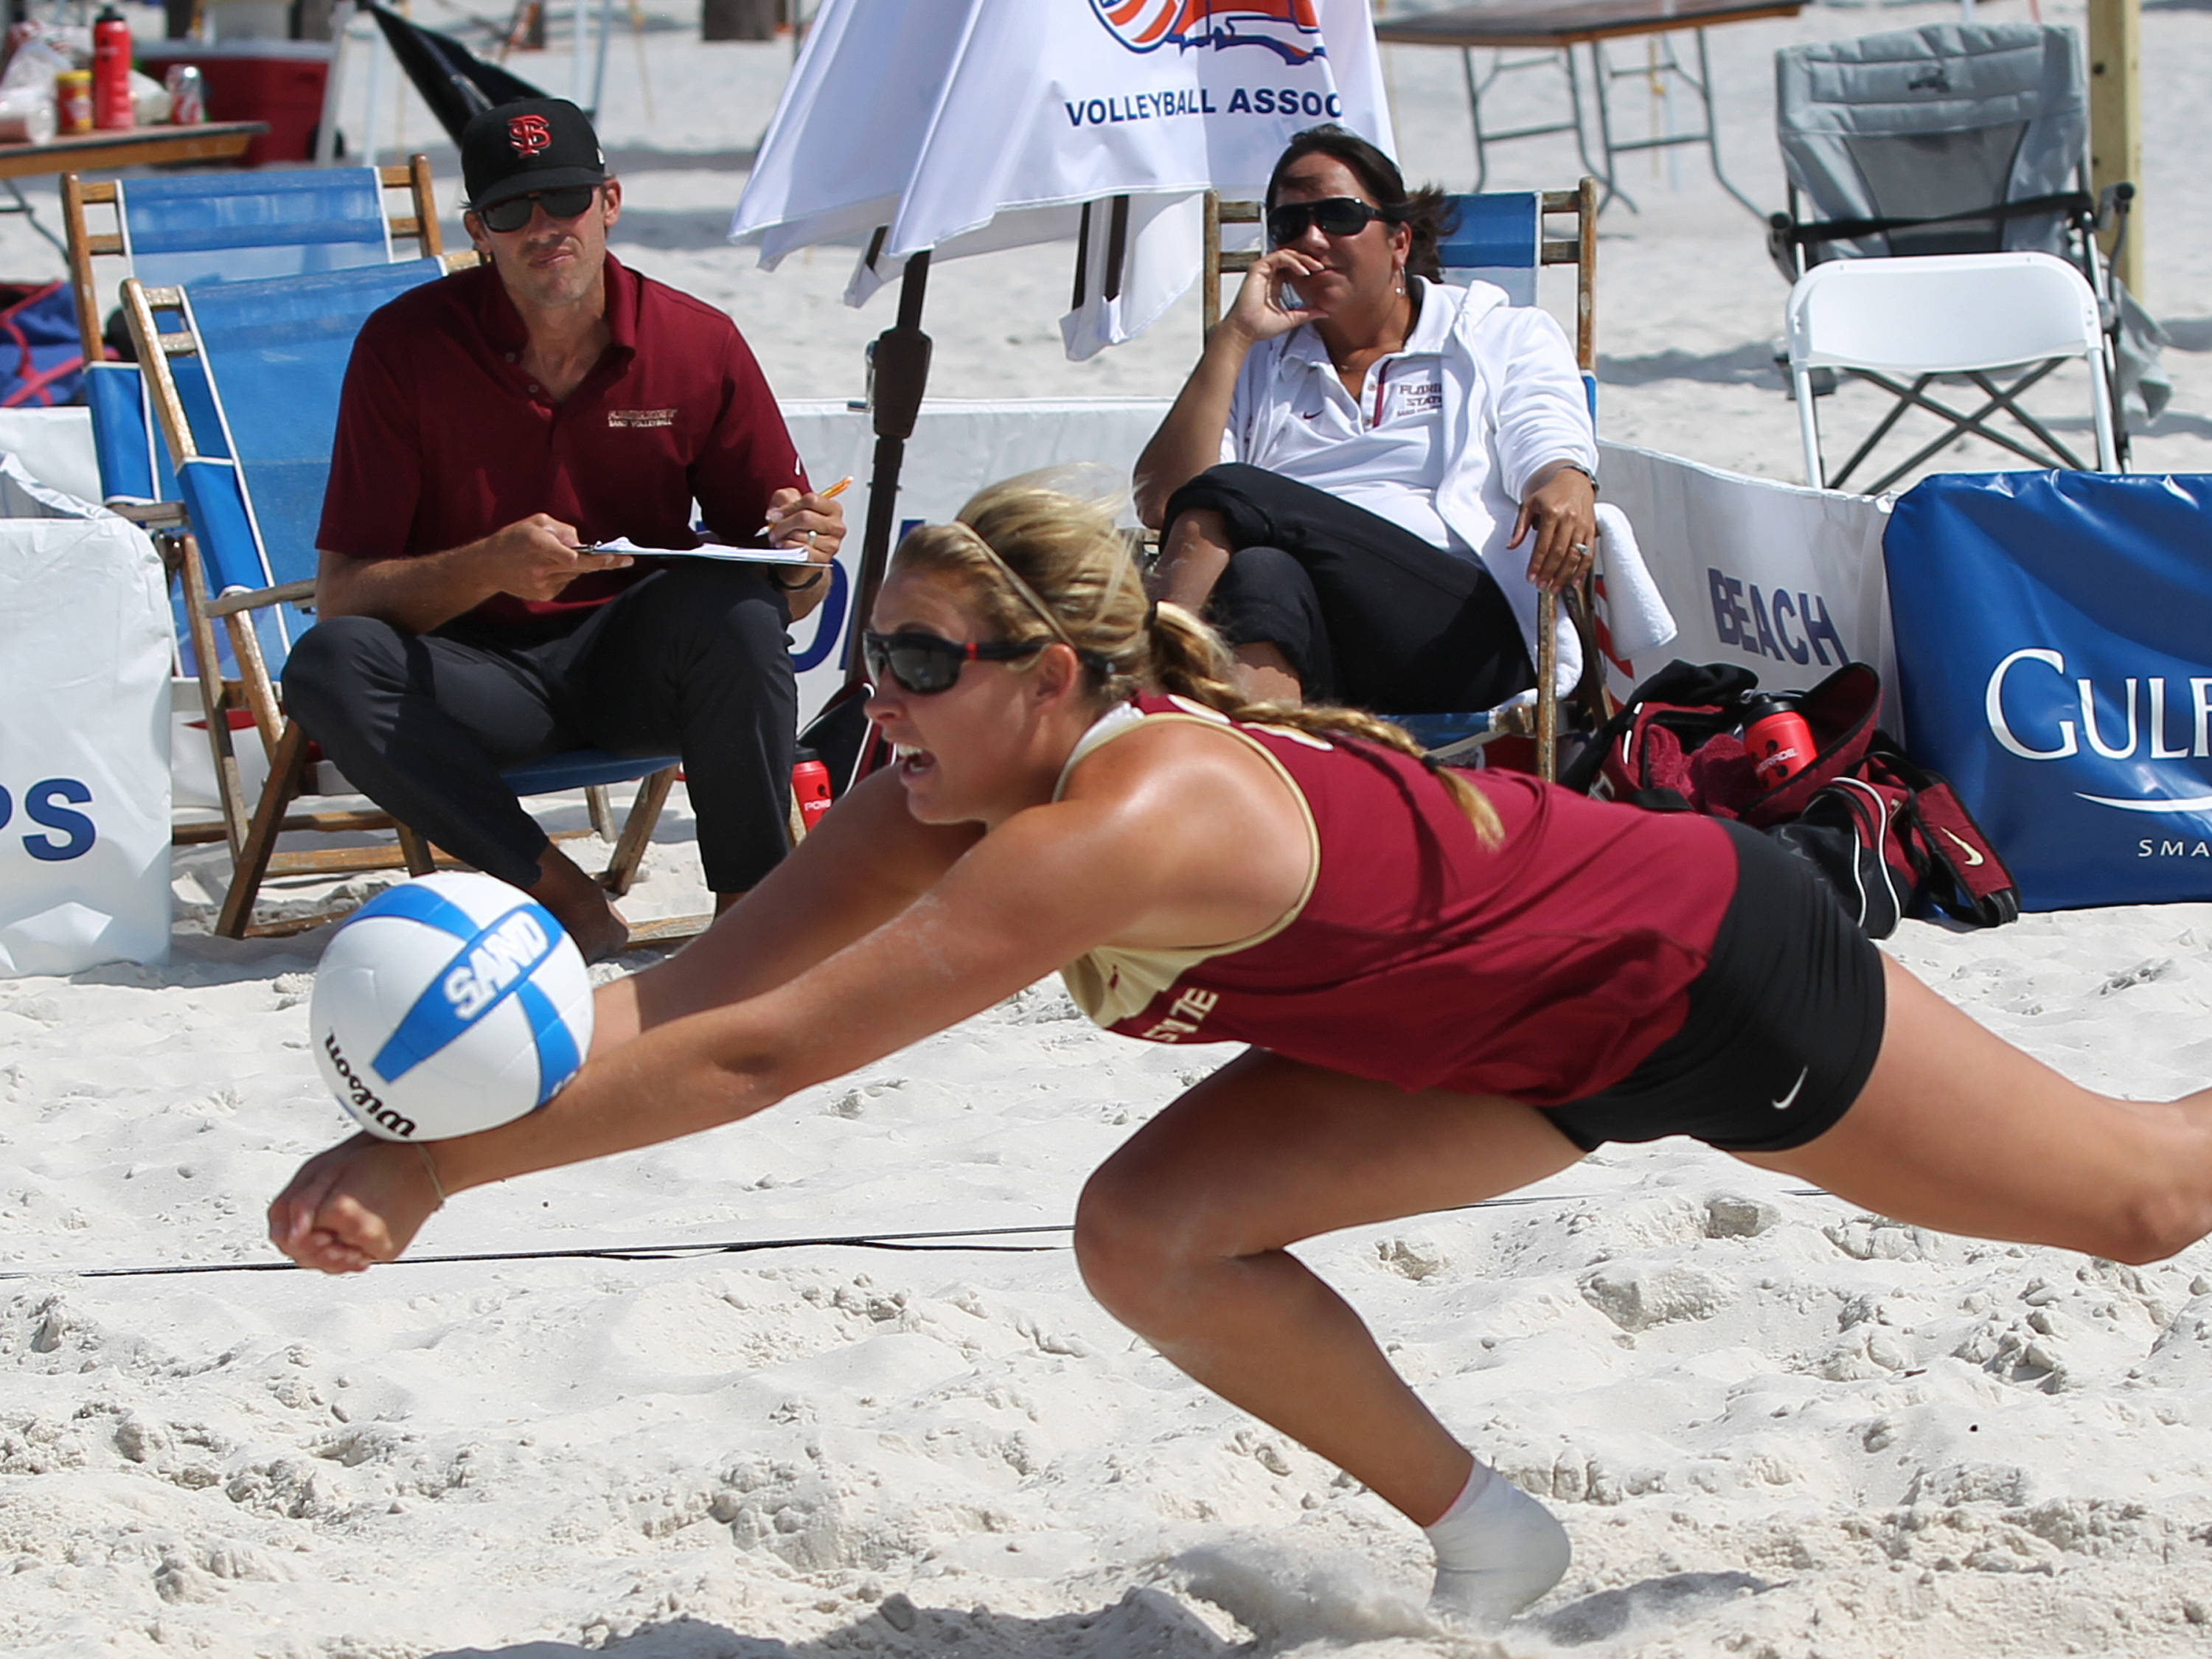 Coaches Danalee and Brian Corso watching Sarah Wickstrom, AVCA Collegiate Sand Volleyball National  Championships - Pairs,  Gulf Shores, Alabama, 05/05/13 . (Photo by Steve Musco)